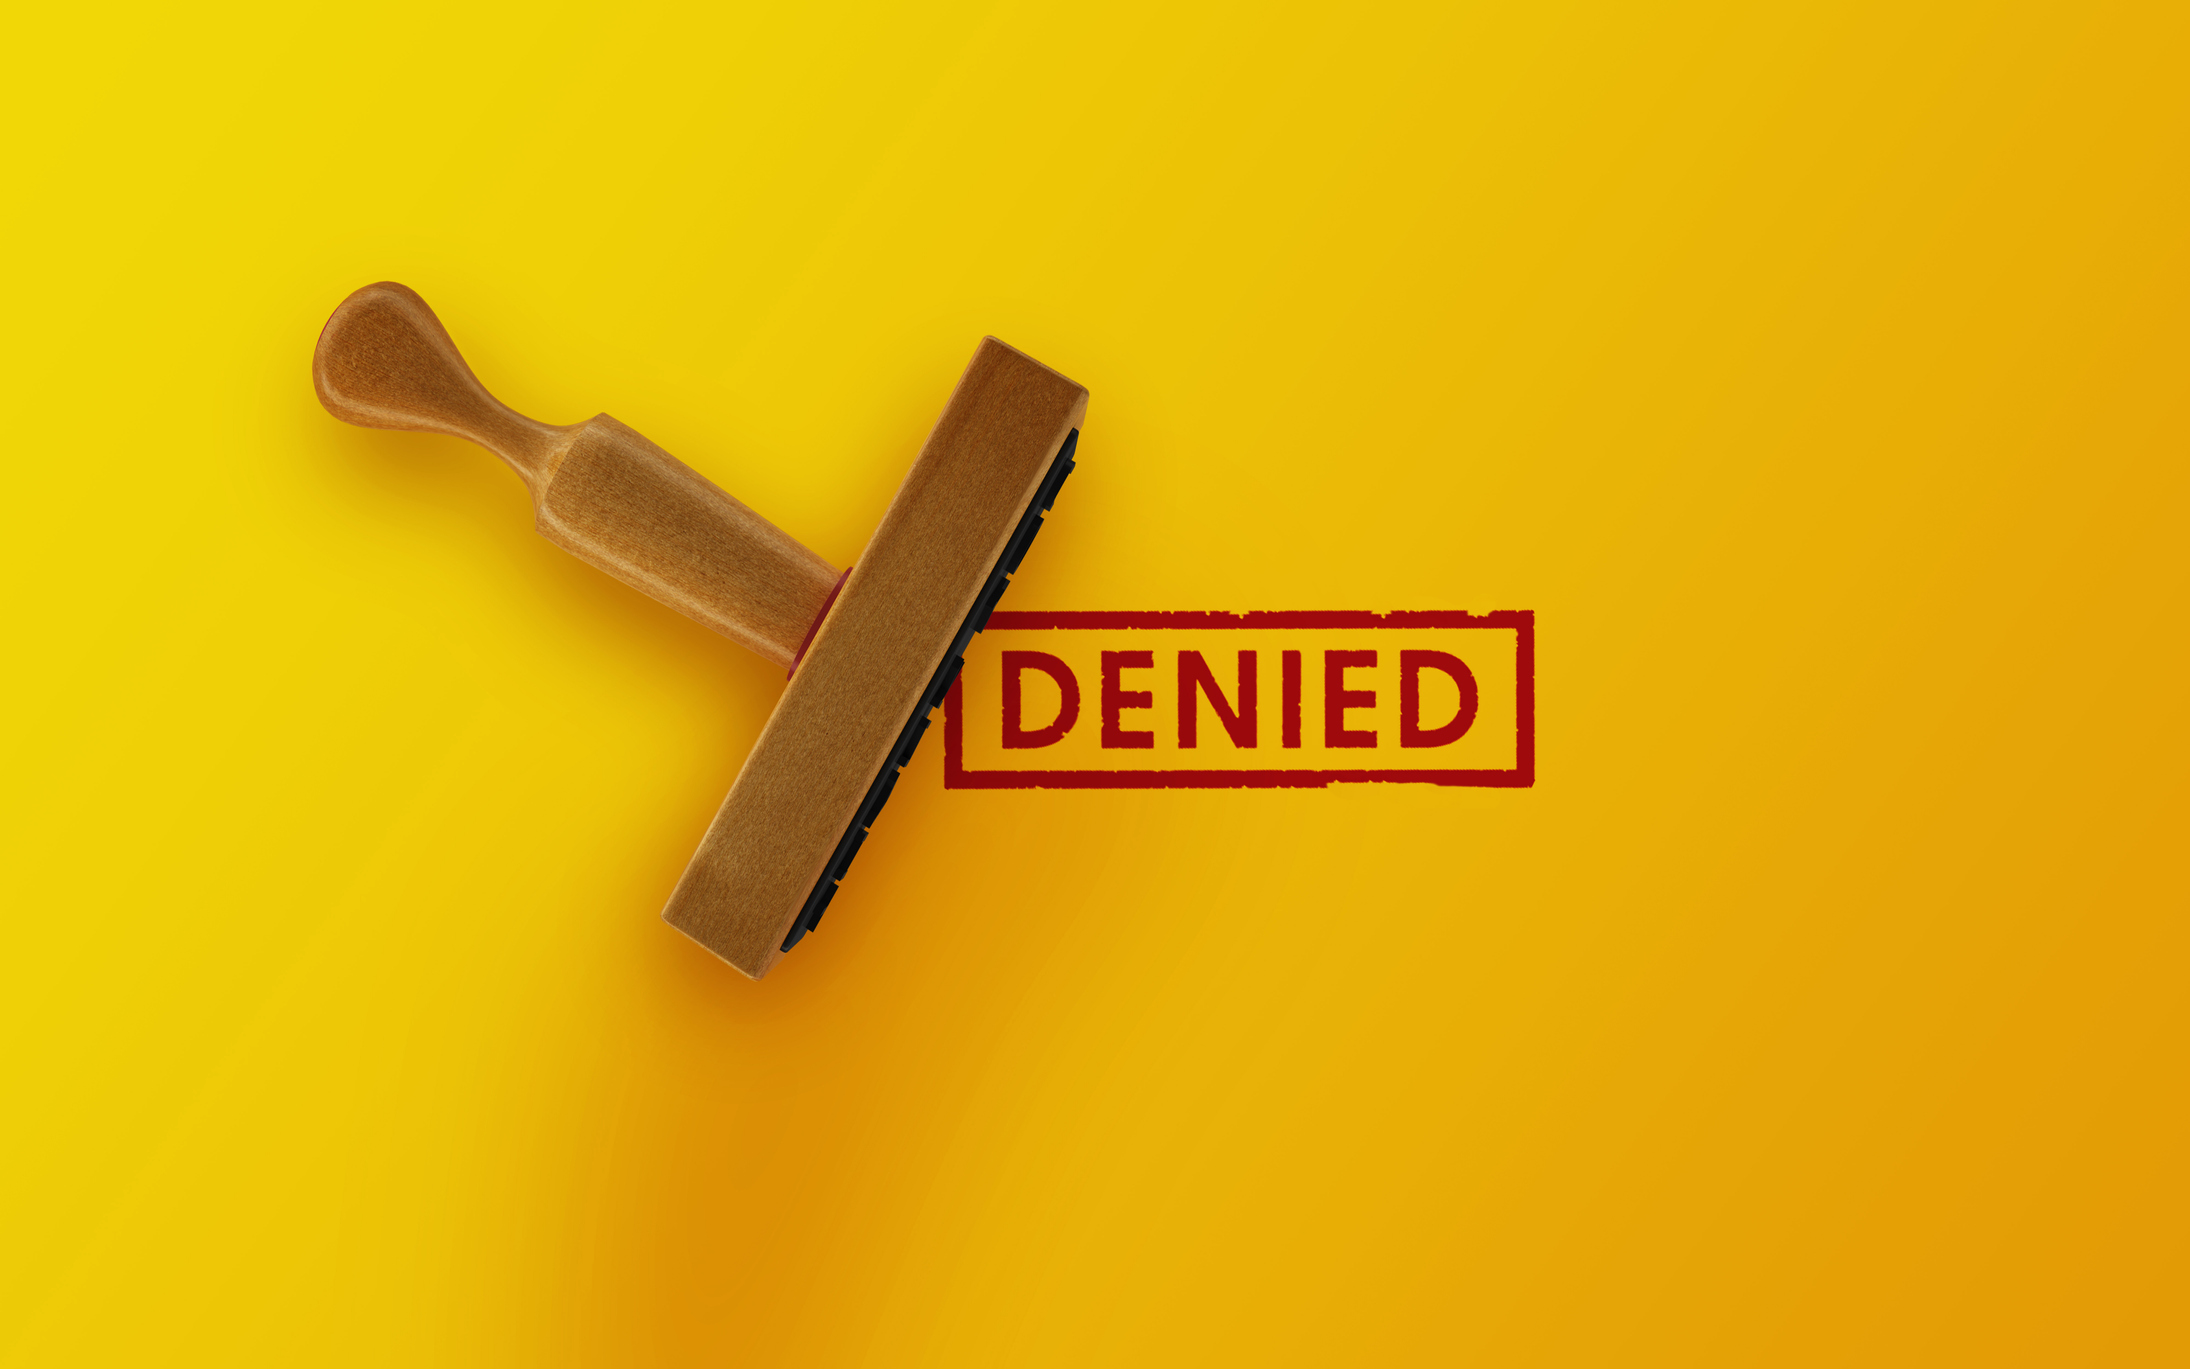 Denied stamp with bright yellow background